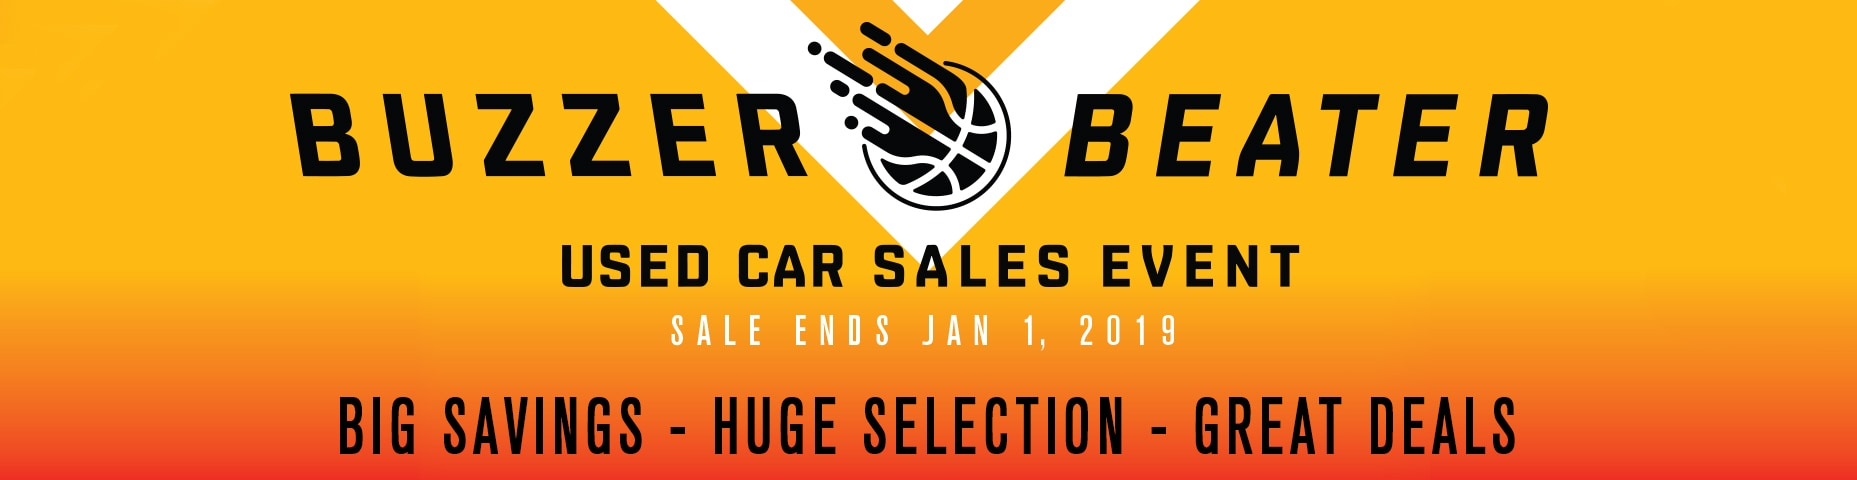 Larry H Miller Honda >> Larry H Miller Honda Murray Buzzer Beater Used Car Sales Event